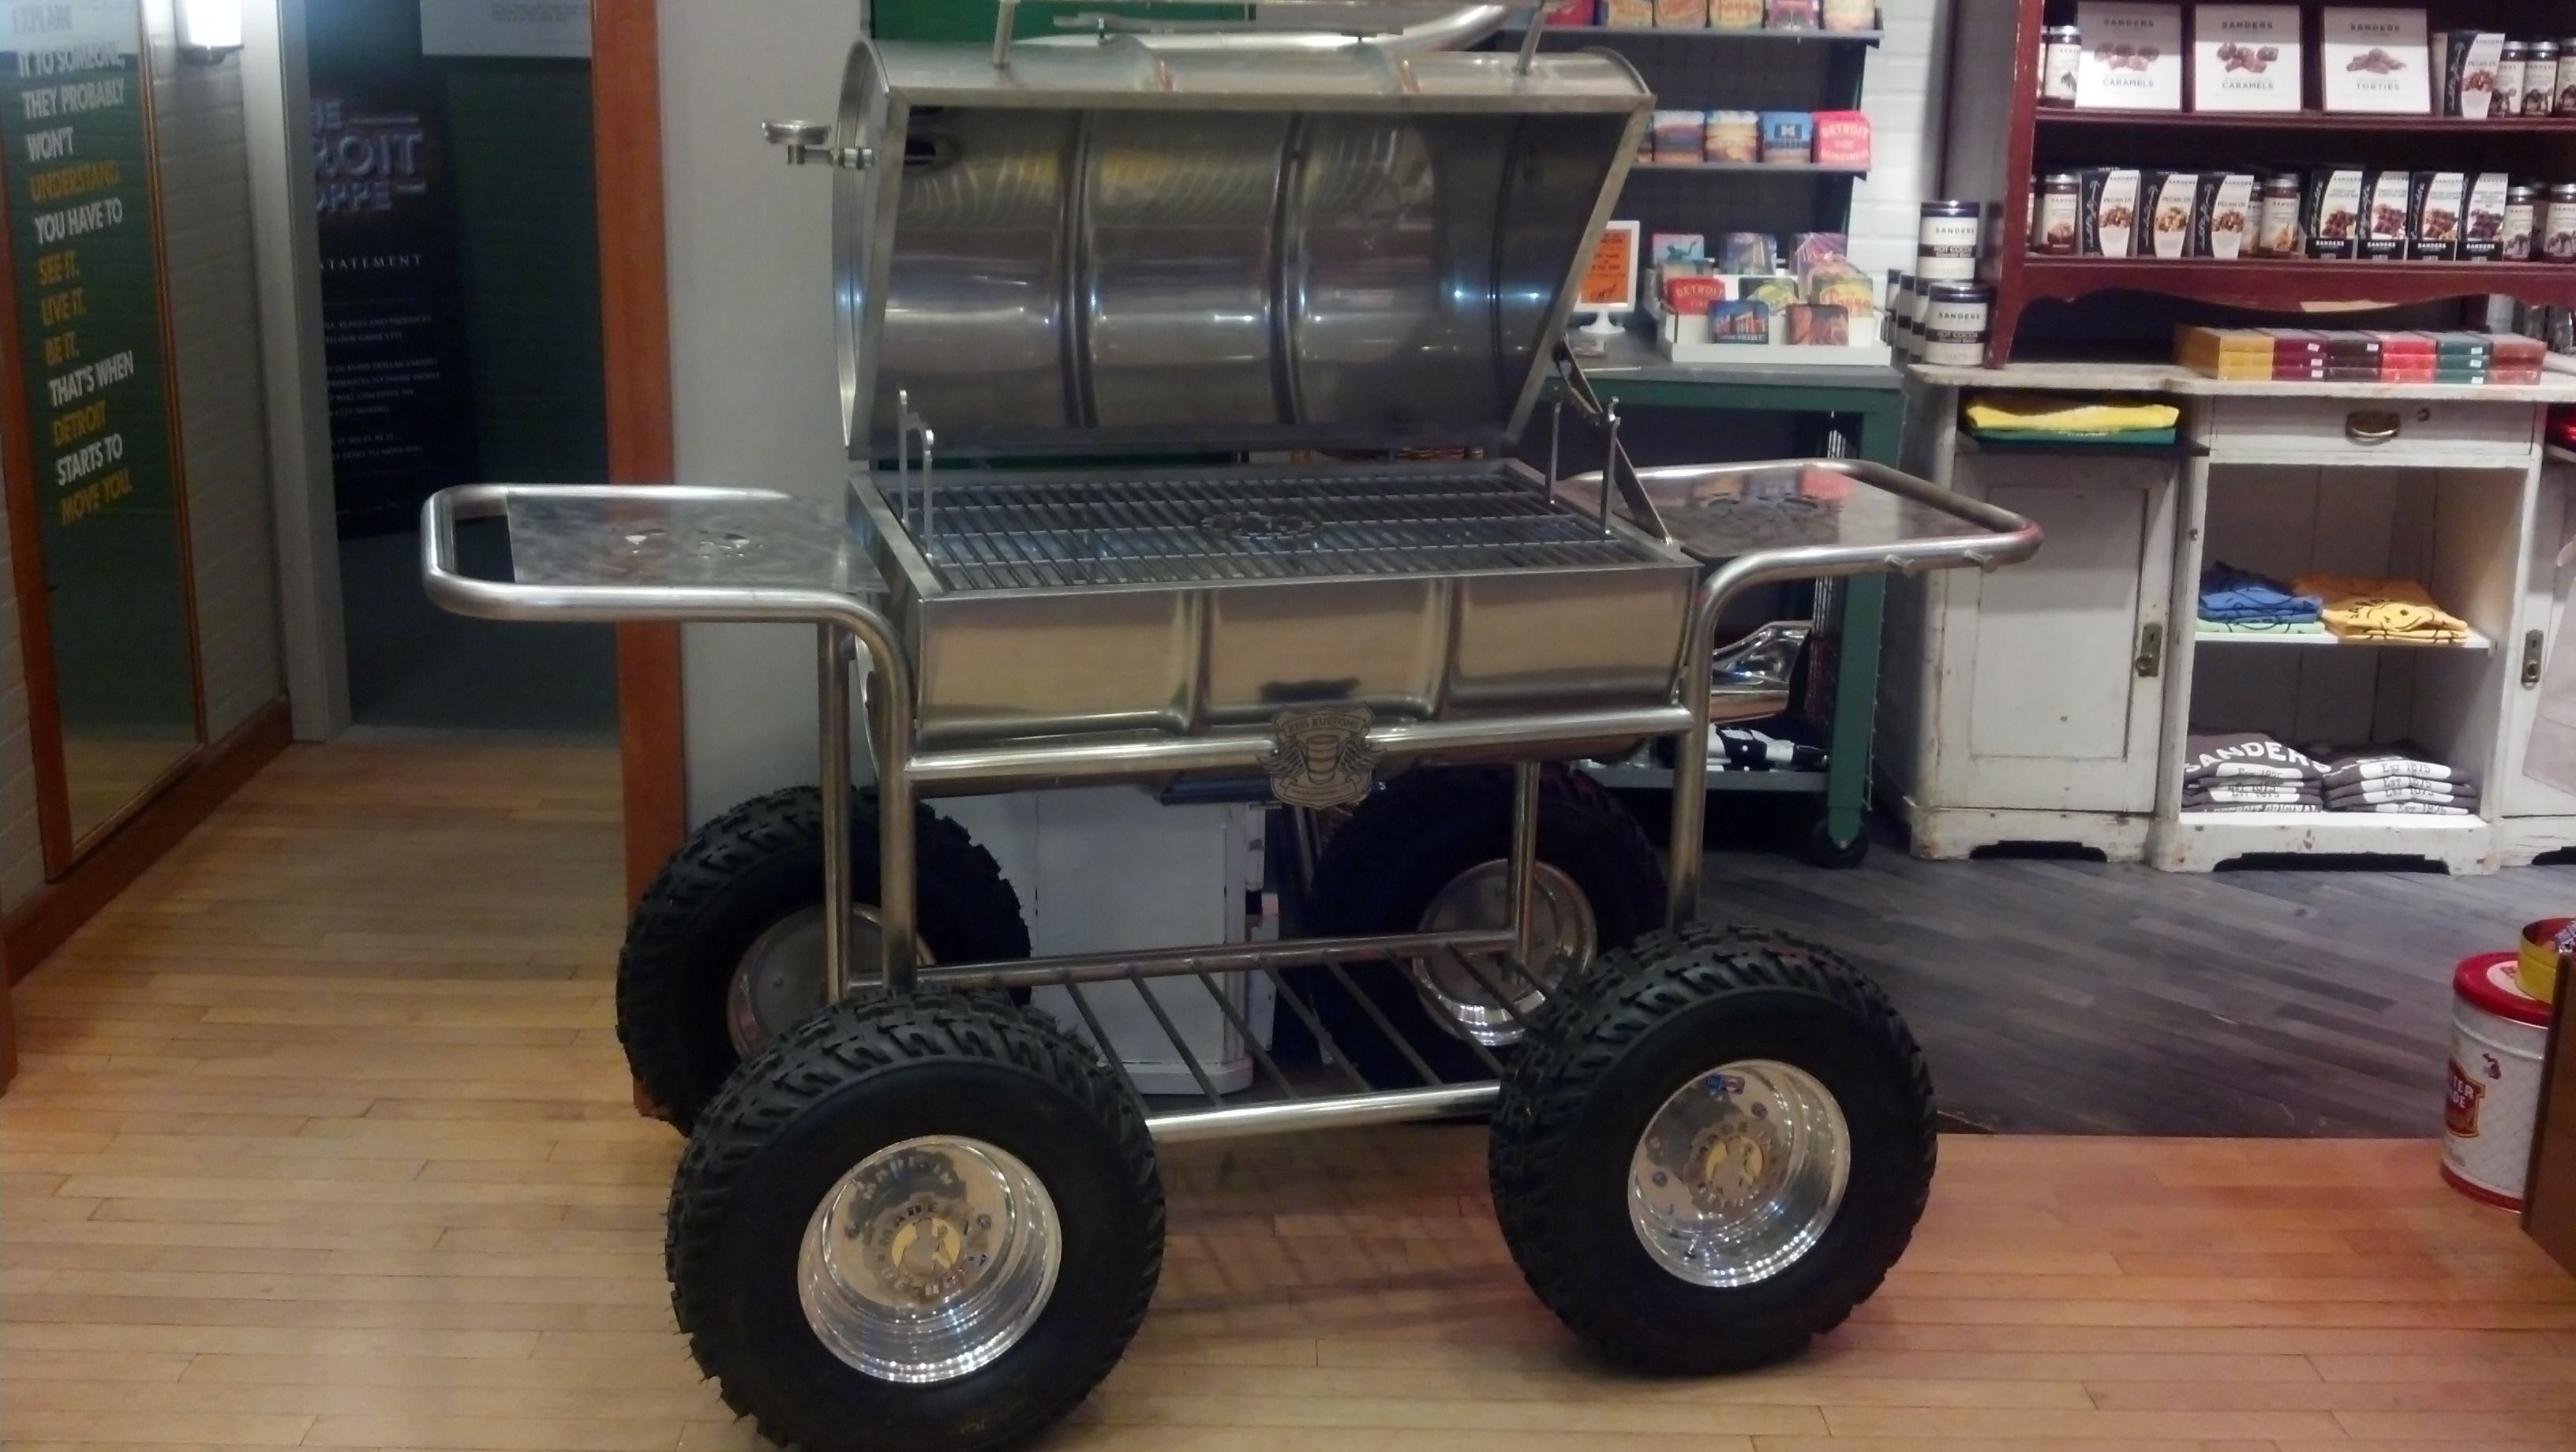 This Awesome grill was designed by Kid